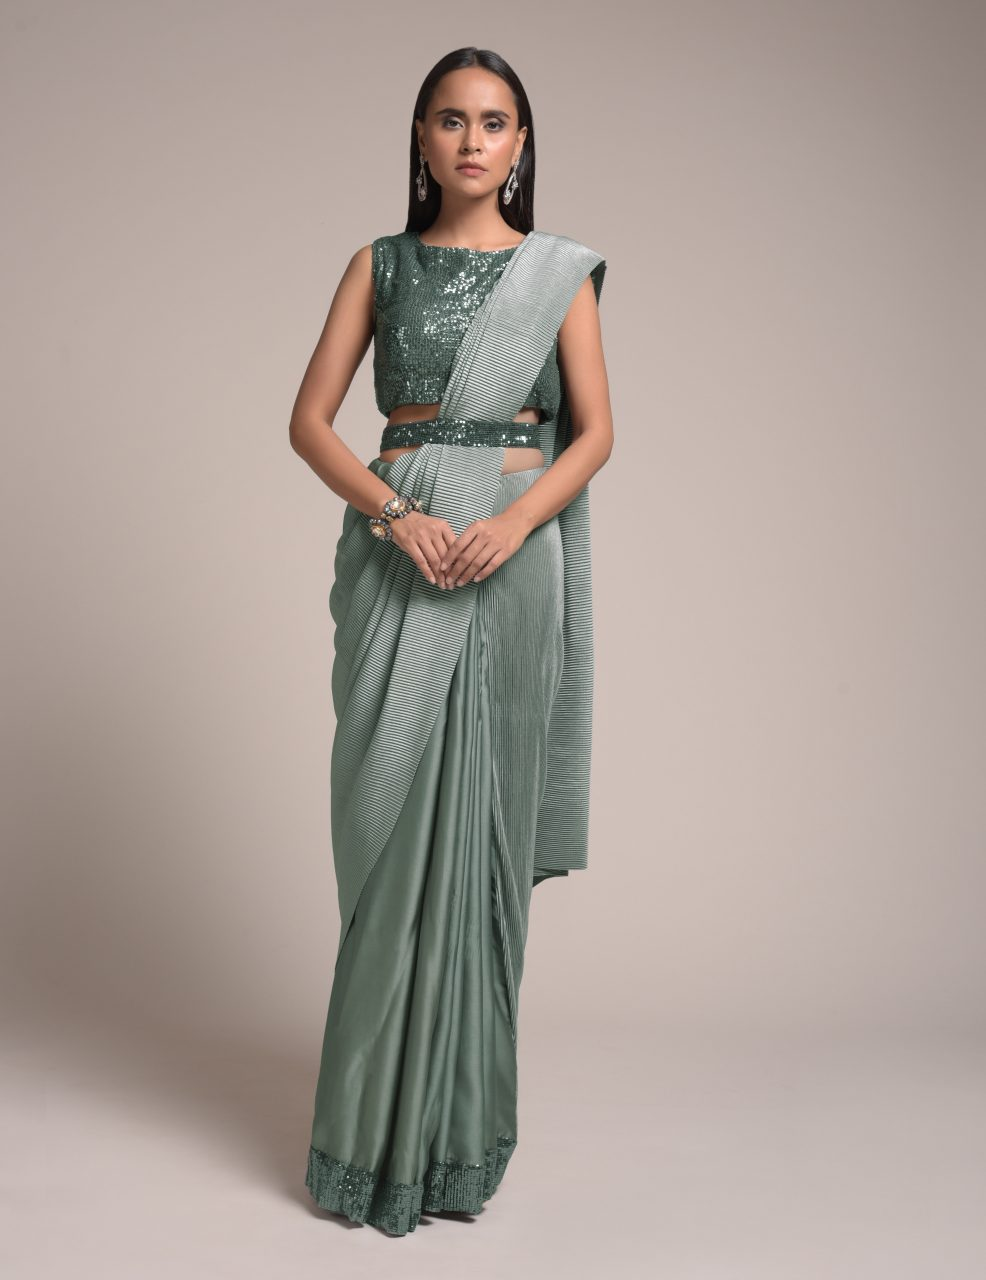 5. Shimmer Half and Half Saree in Silk